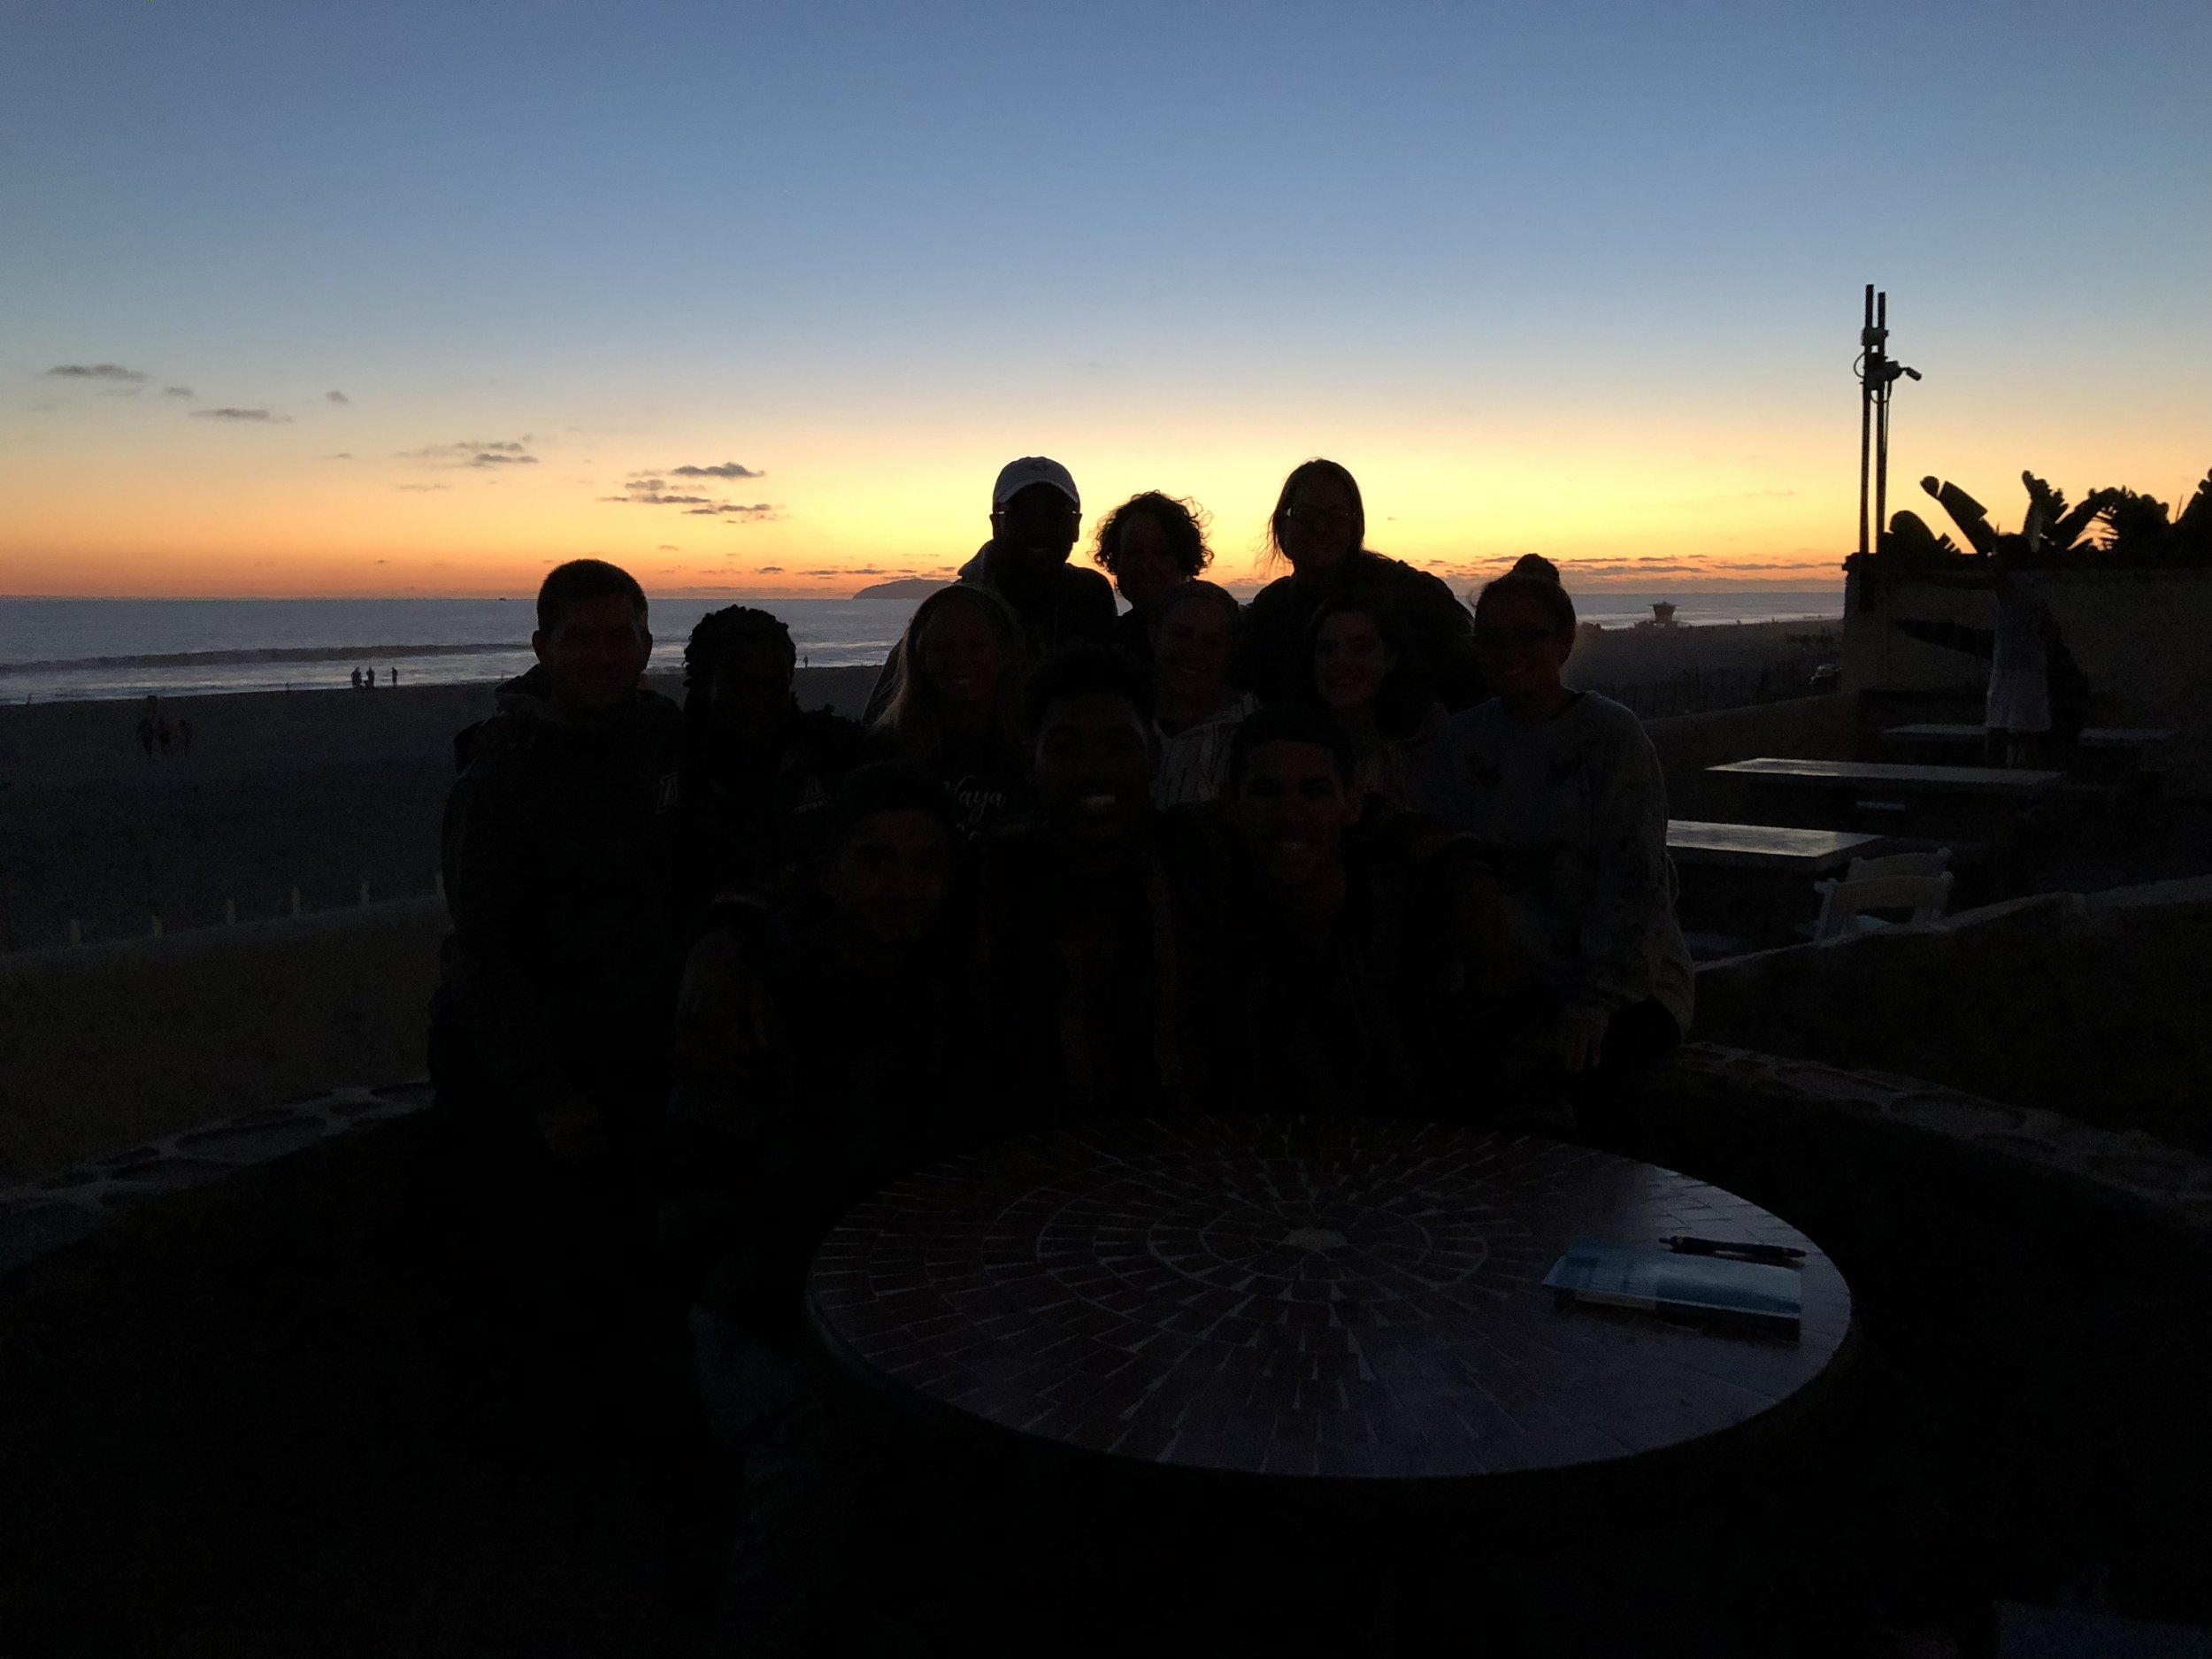 Turns out it's really hard to get a nice picture of the sunset and get people to show up. But we tried our best.